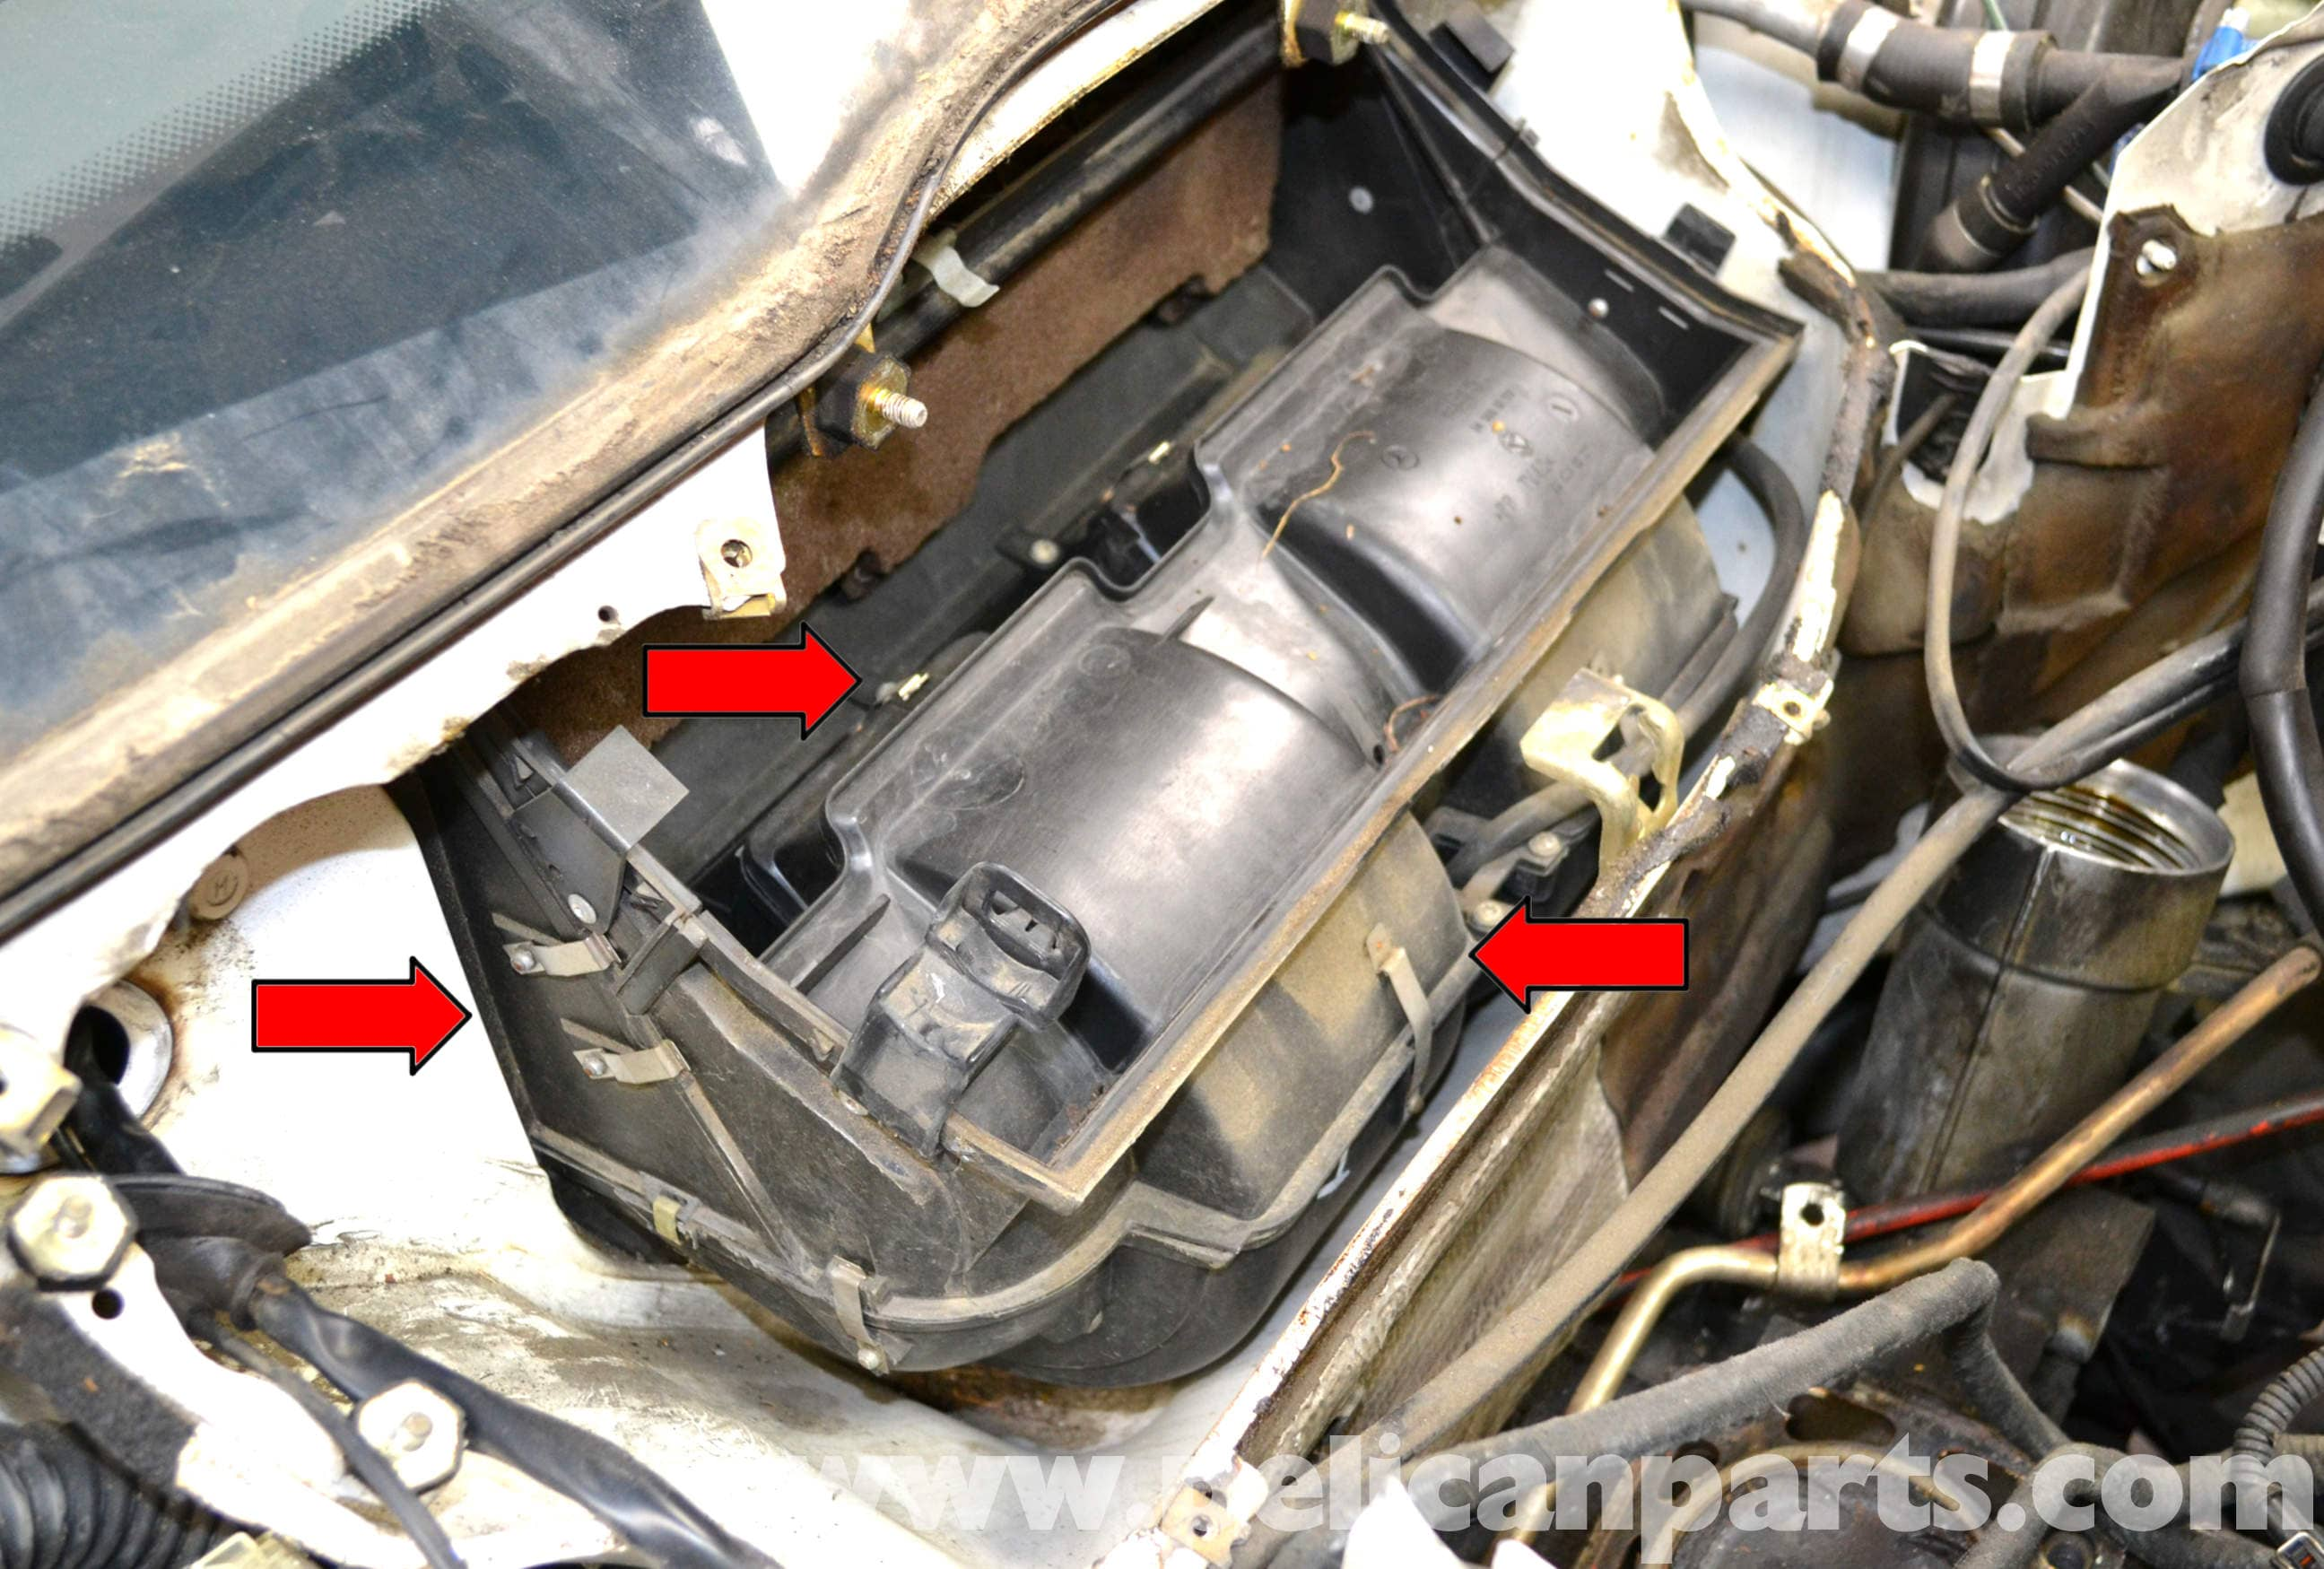 Mercedes W124 300e as well Watch further 04 ENGINE Spark Plug Coil Replacement further Watch additionally 486278 W211 Fuses Relays Sam Modules Chart. on mercedes benz w124 parts